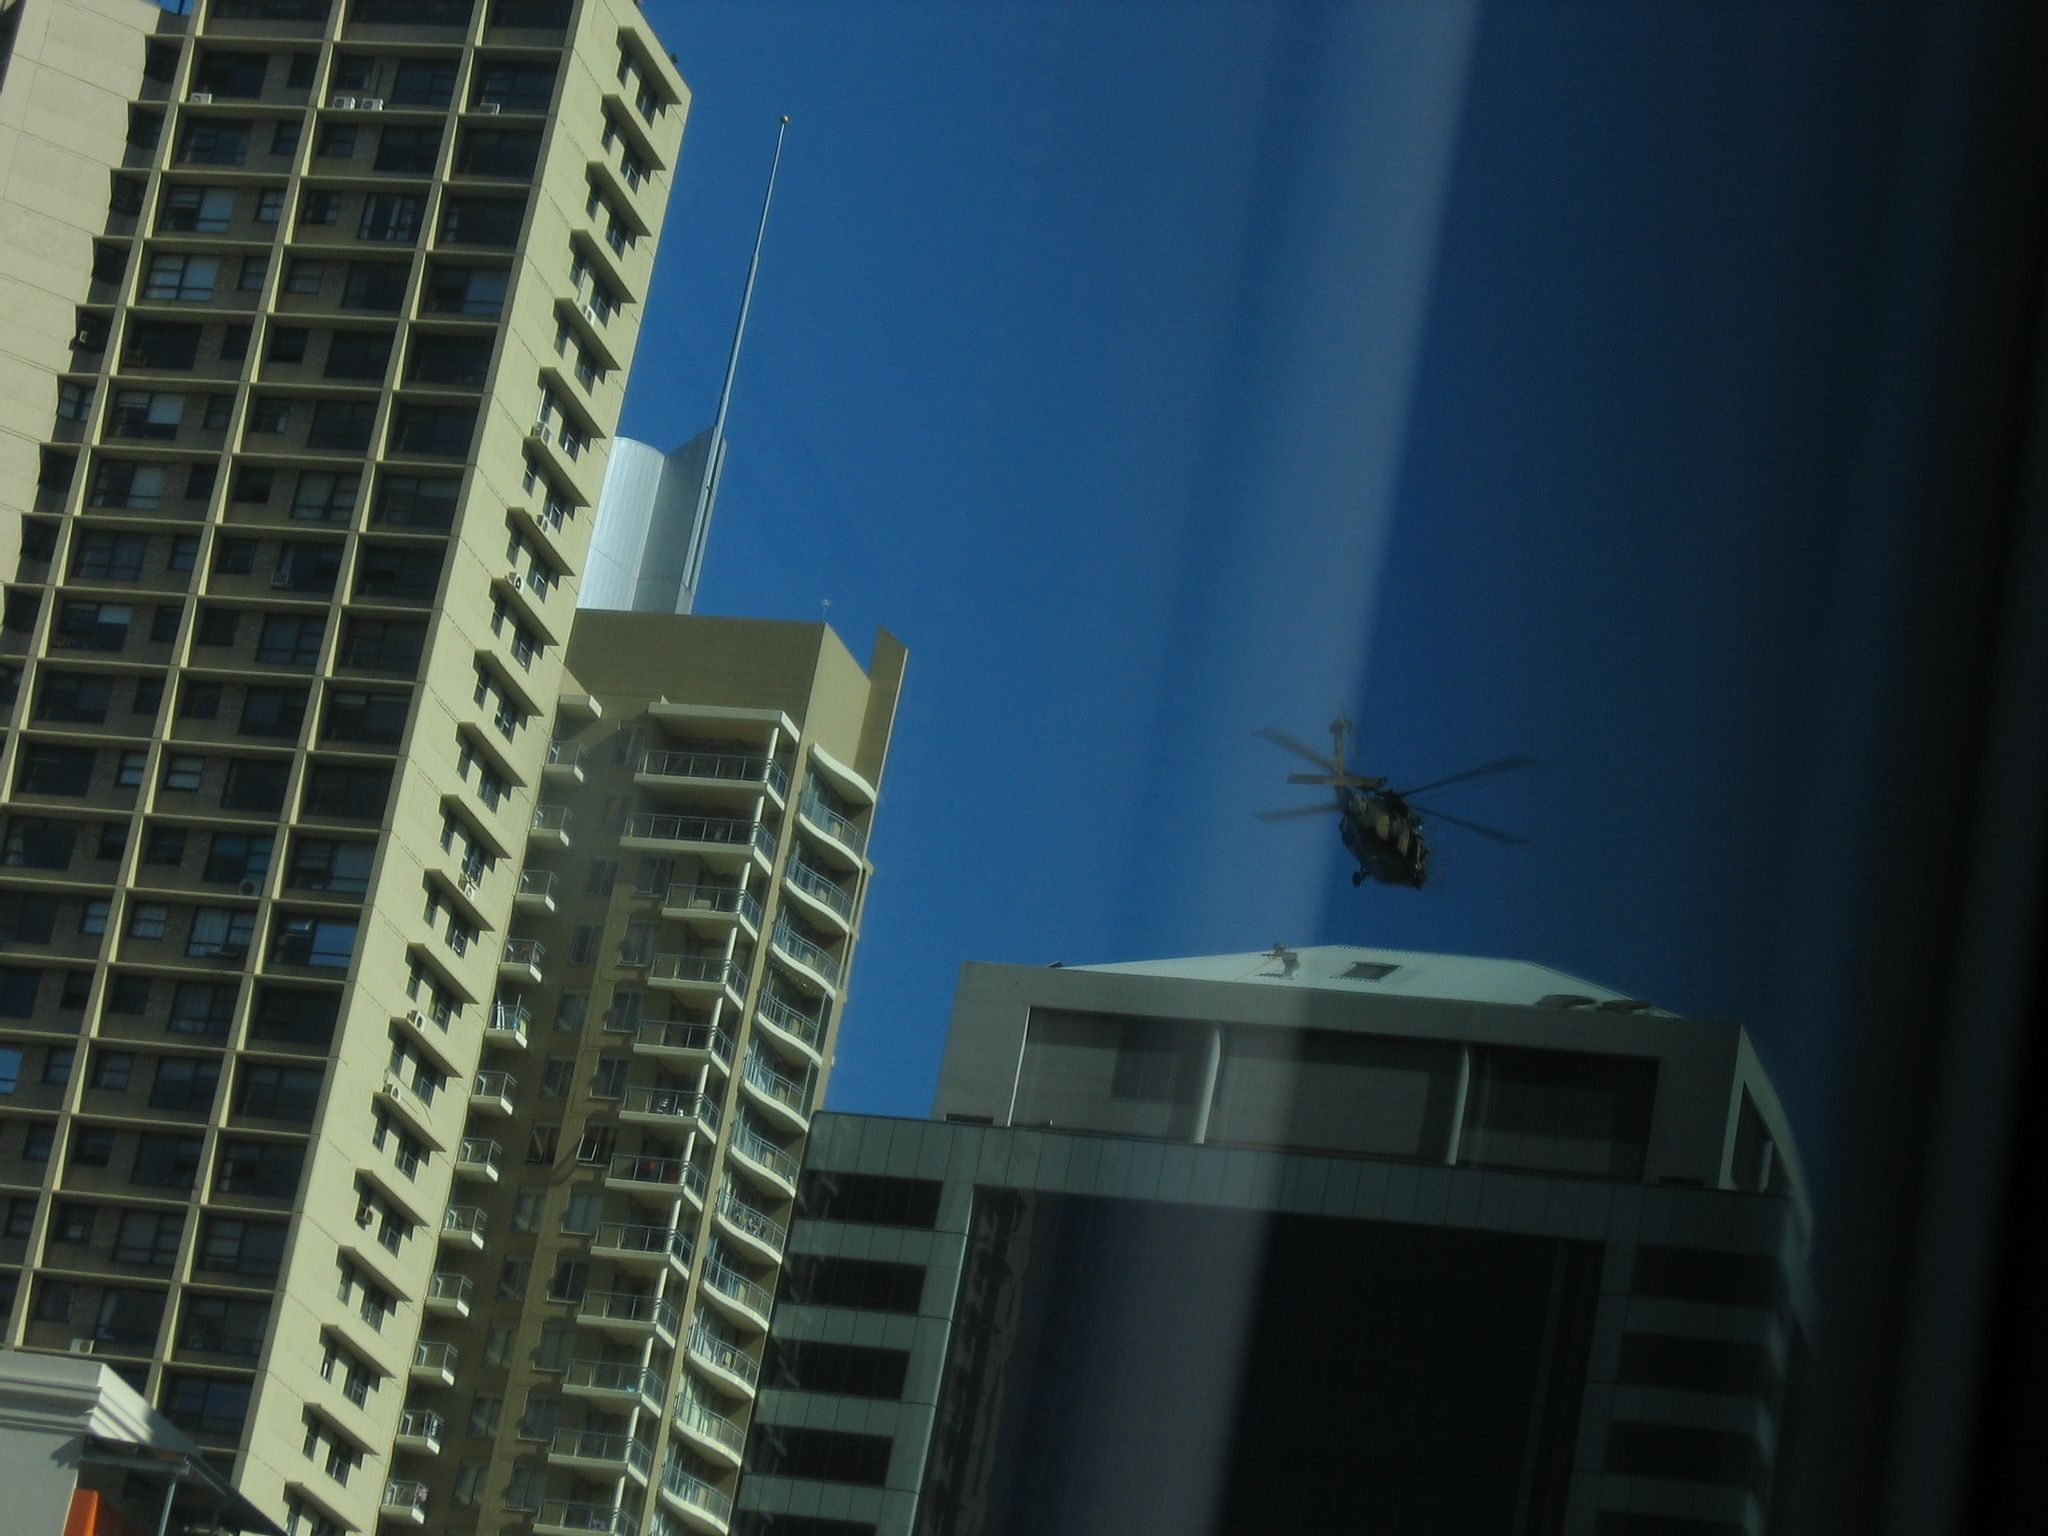 A photo of a Blackhawk helicopter hovering above a tall city building.